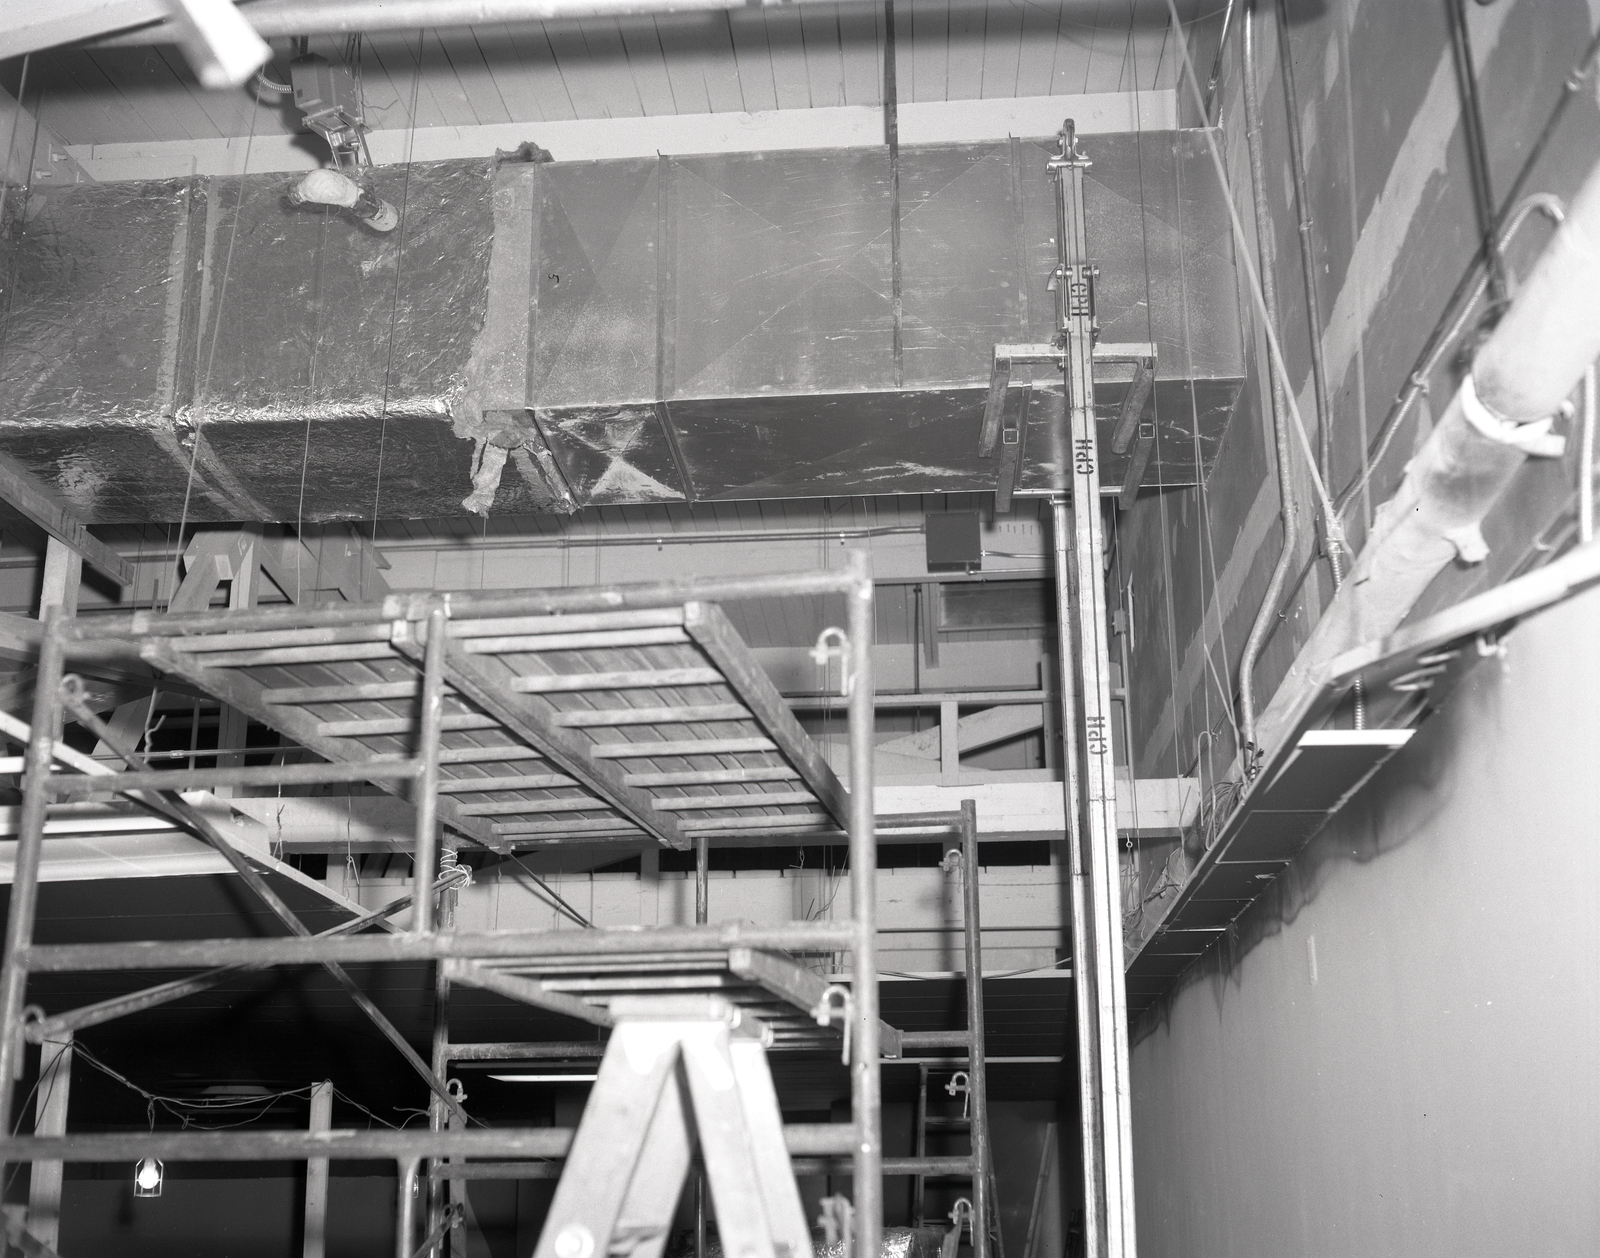 STAIRWELL TOWER CONSTRUCTION AT THE VISITOR INFORMATION CENTER VIC